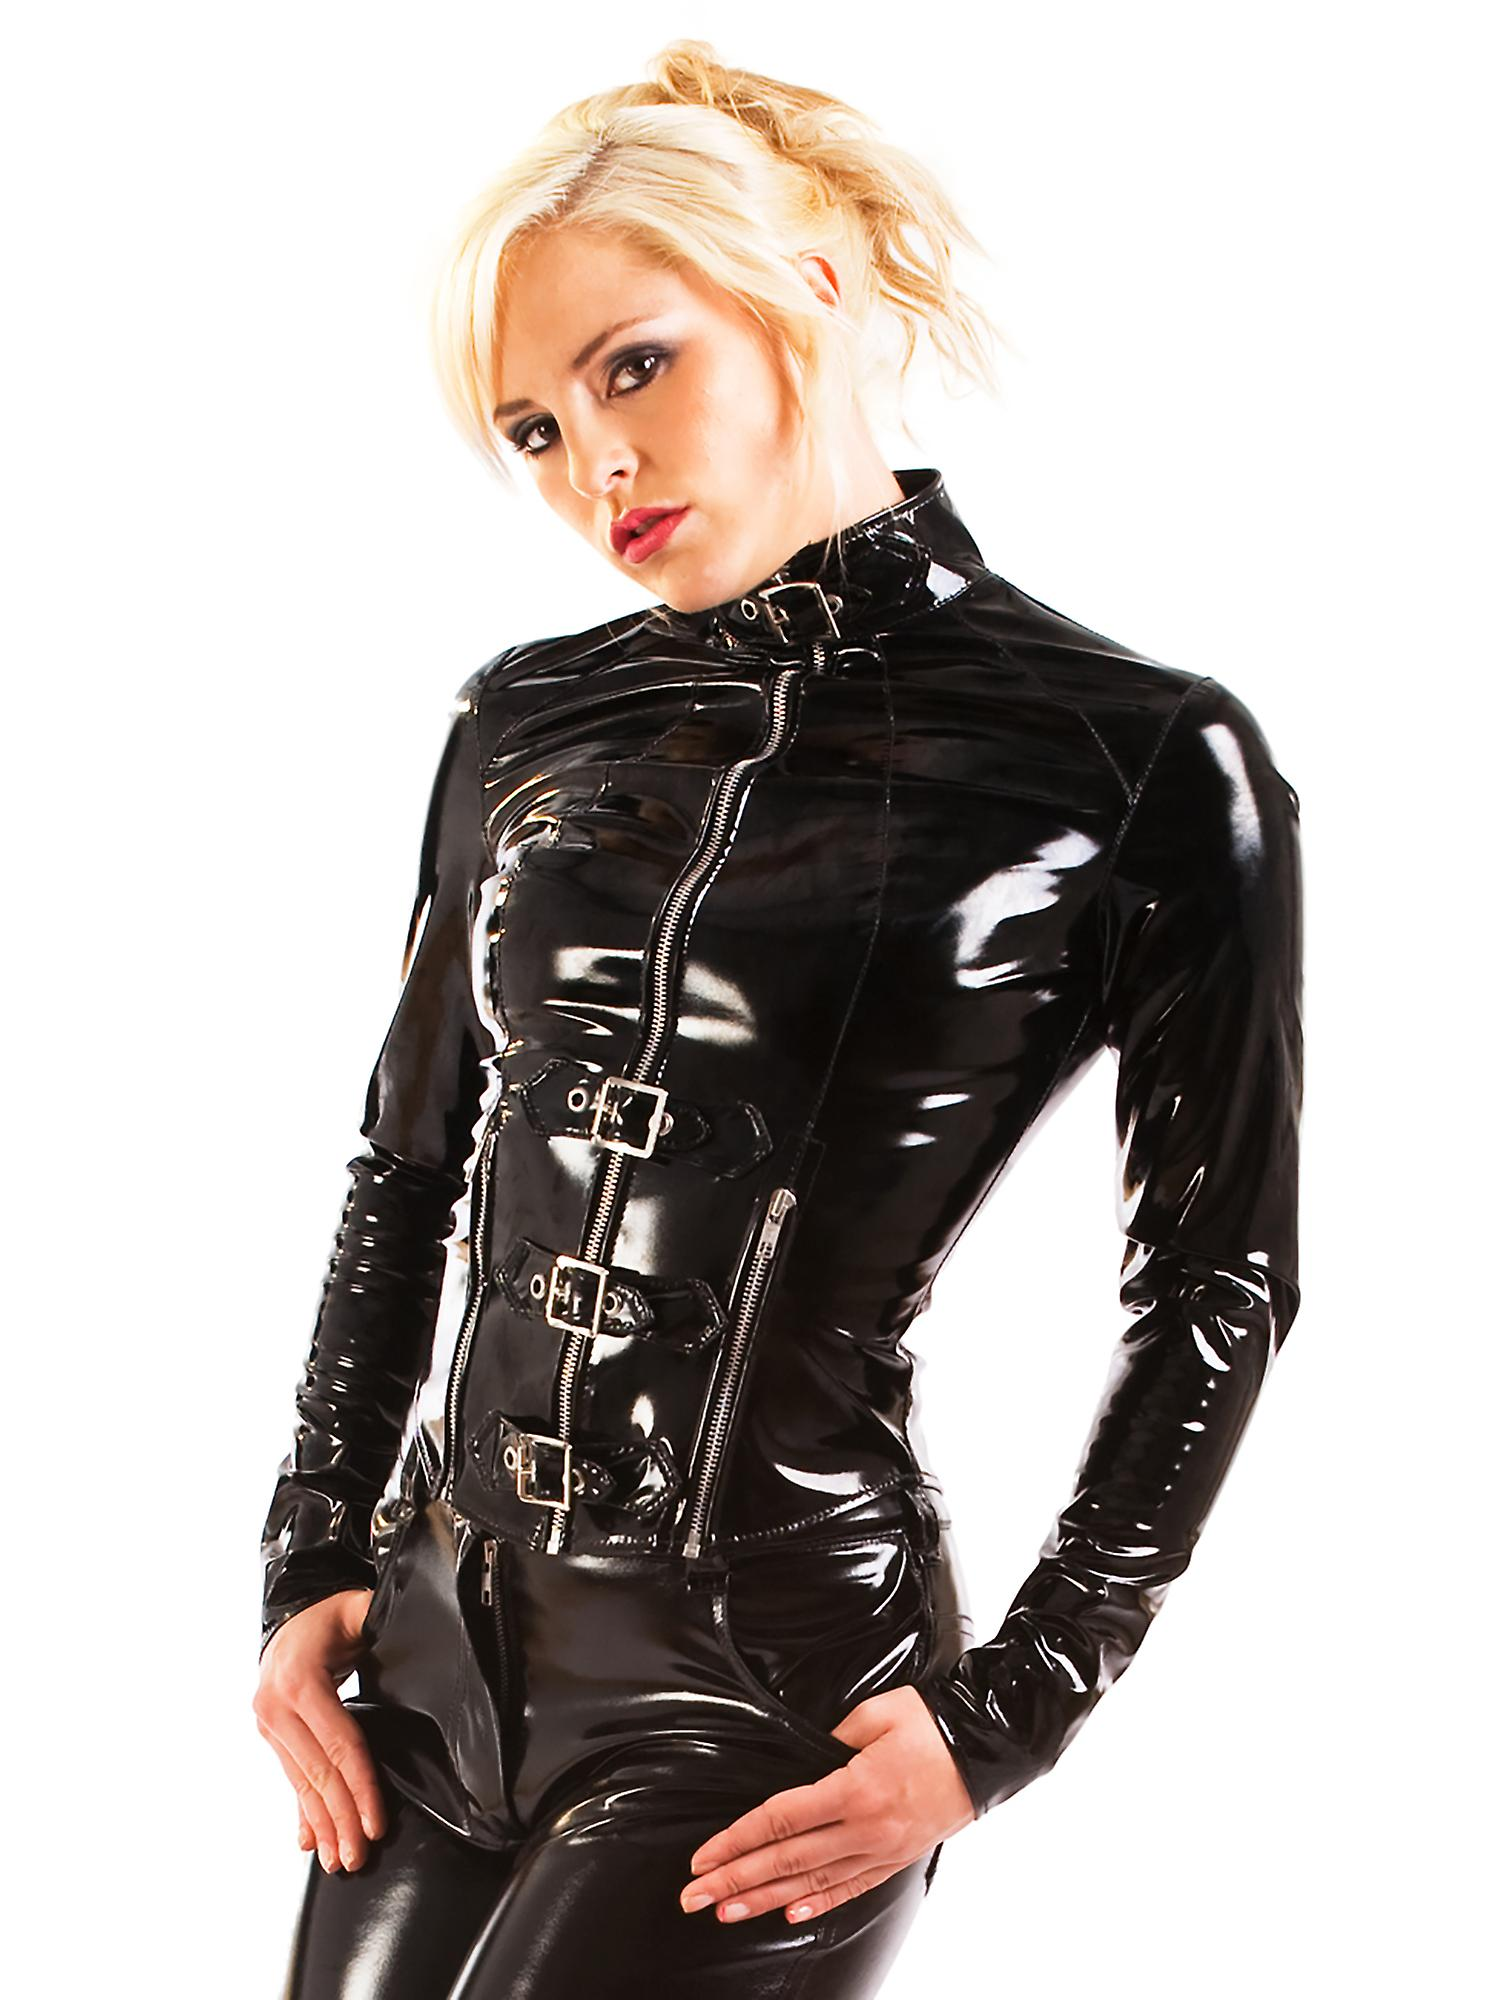 Honour Women's Jacket in PVC Buckle Front Punk Style Roleplay Costume